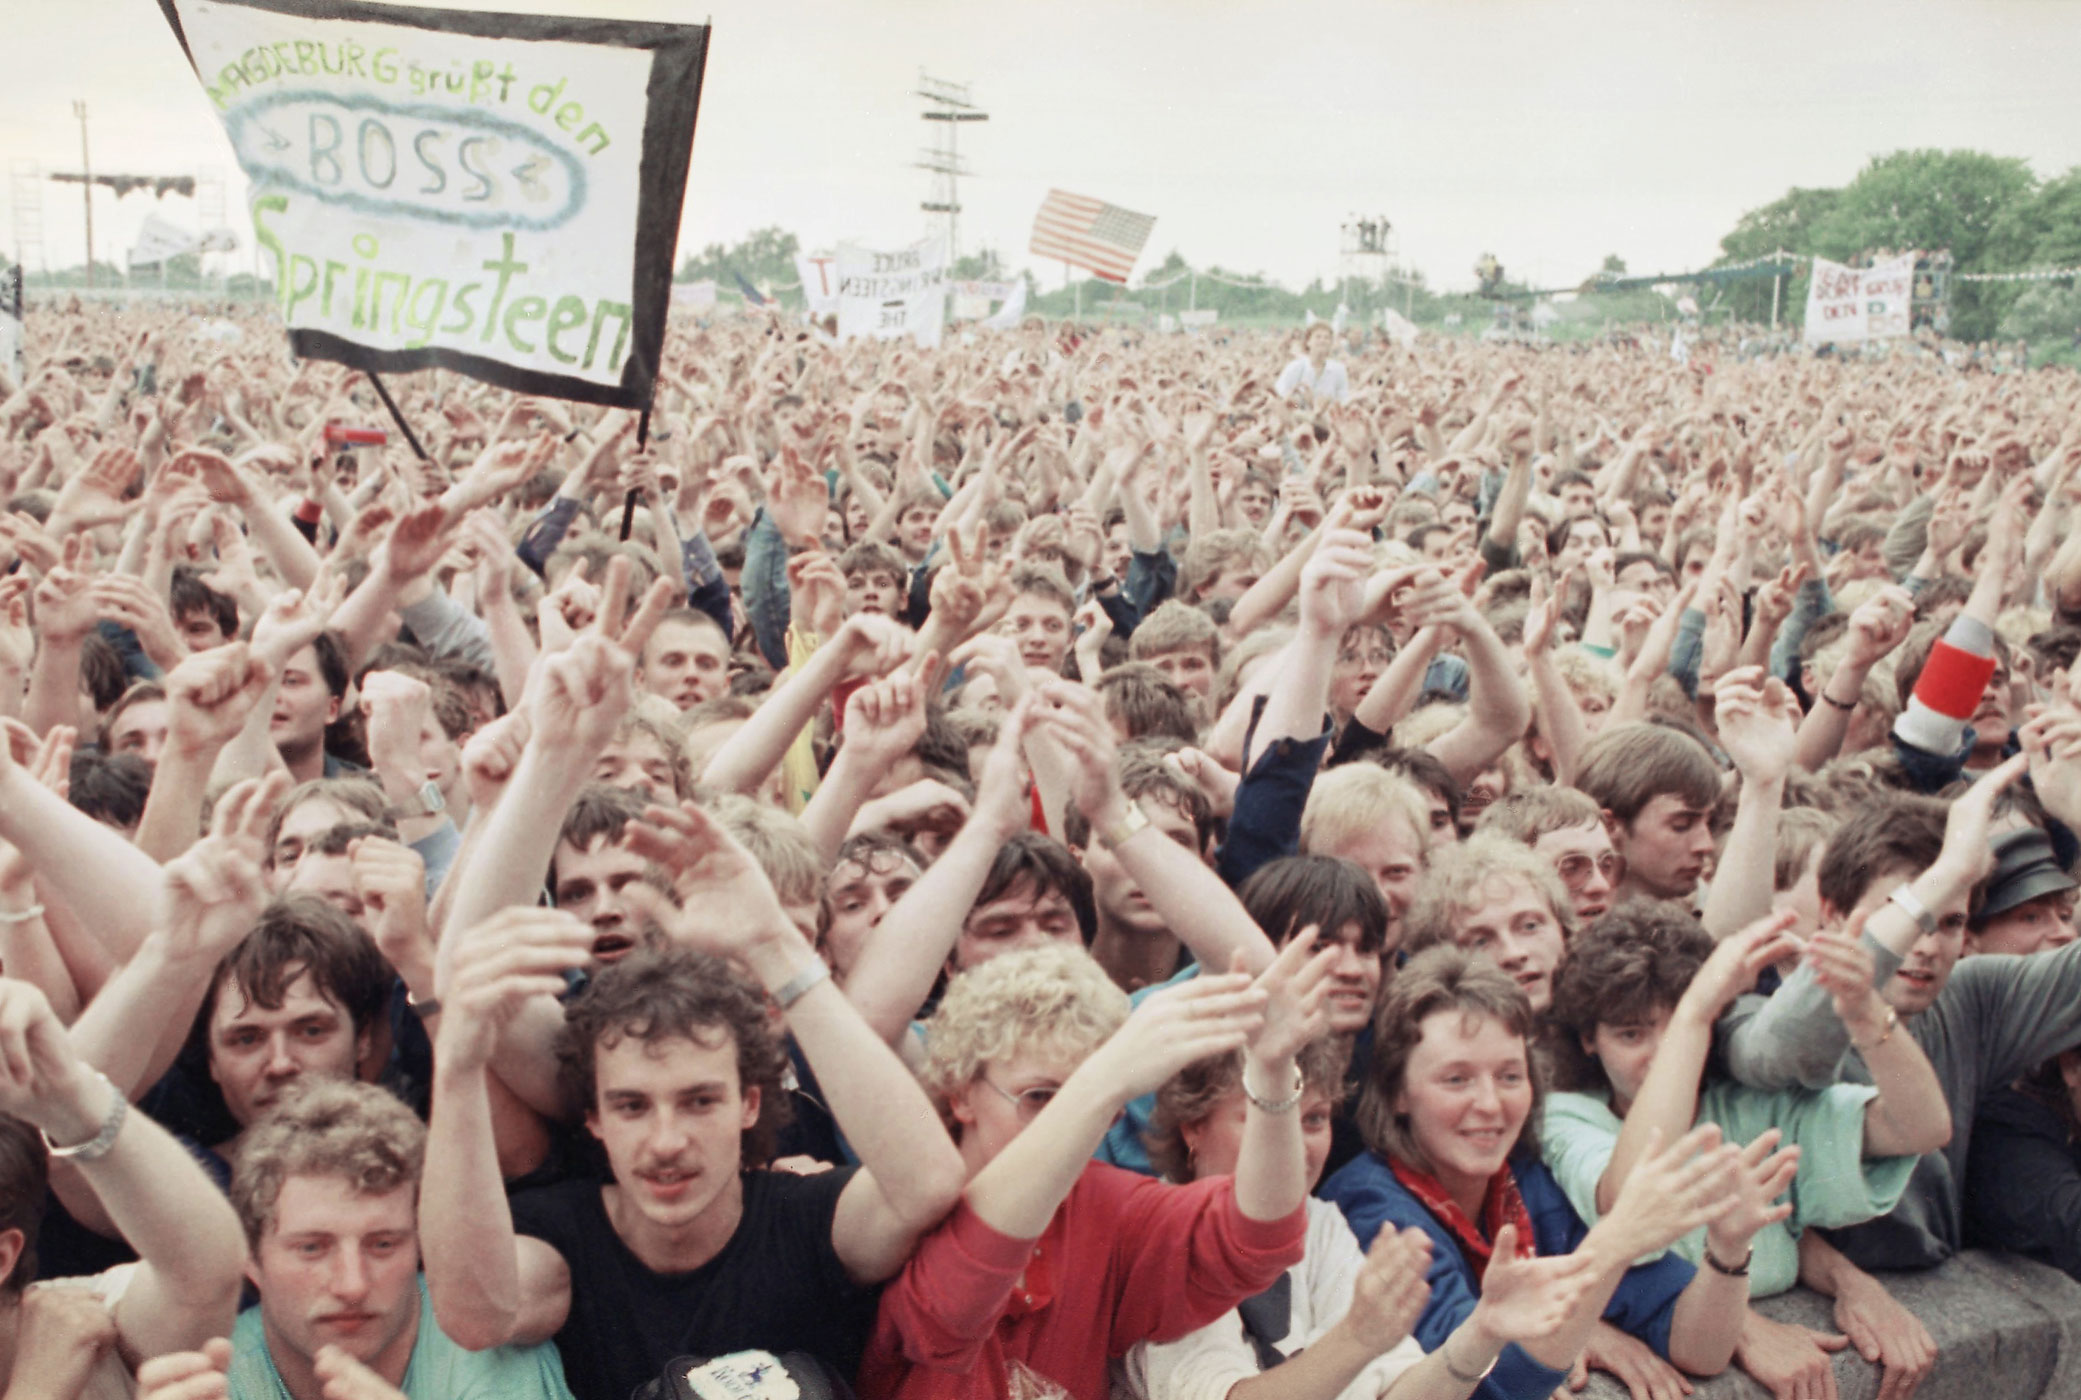 """1988:                                On July 19, Springsteen held a concert in East Germany that attracted 300,000 spectators, giving a short speech in German before launching into the song, """"Chimes of Freedom."""" """"Springsteen played an amazing concert — four hours long. It went straight to their hearts,"""" said Erik Kirschbaum, author of the book Rocking the Wall, speaking to the BBC. """"And he did mention  freedom  probably risking not being invited again — but I don't think he cared about that."""""""